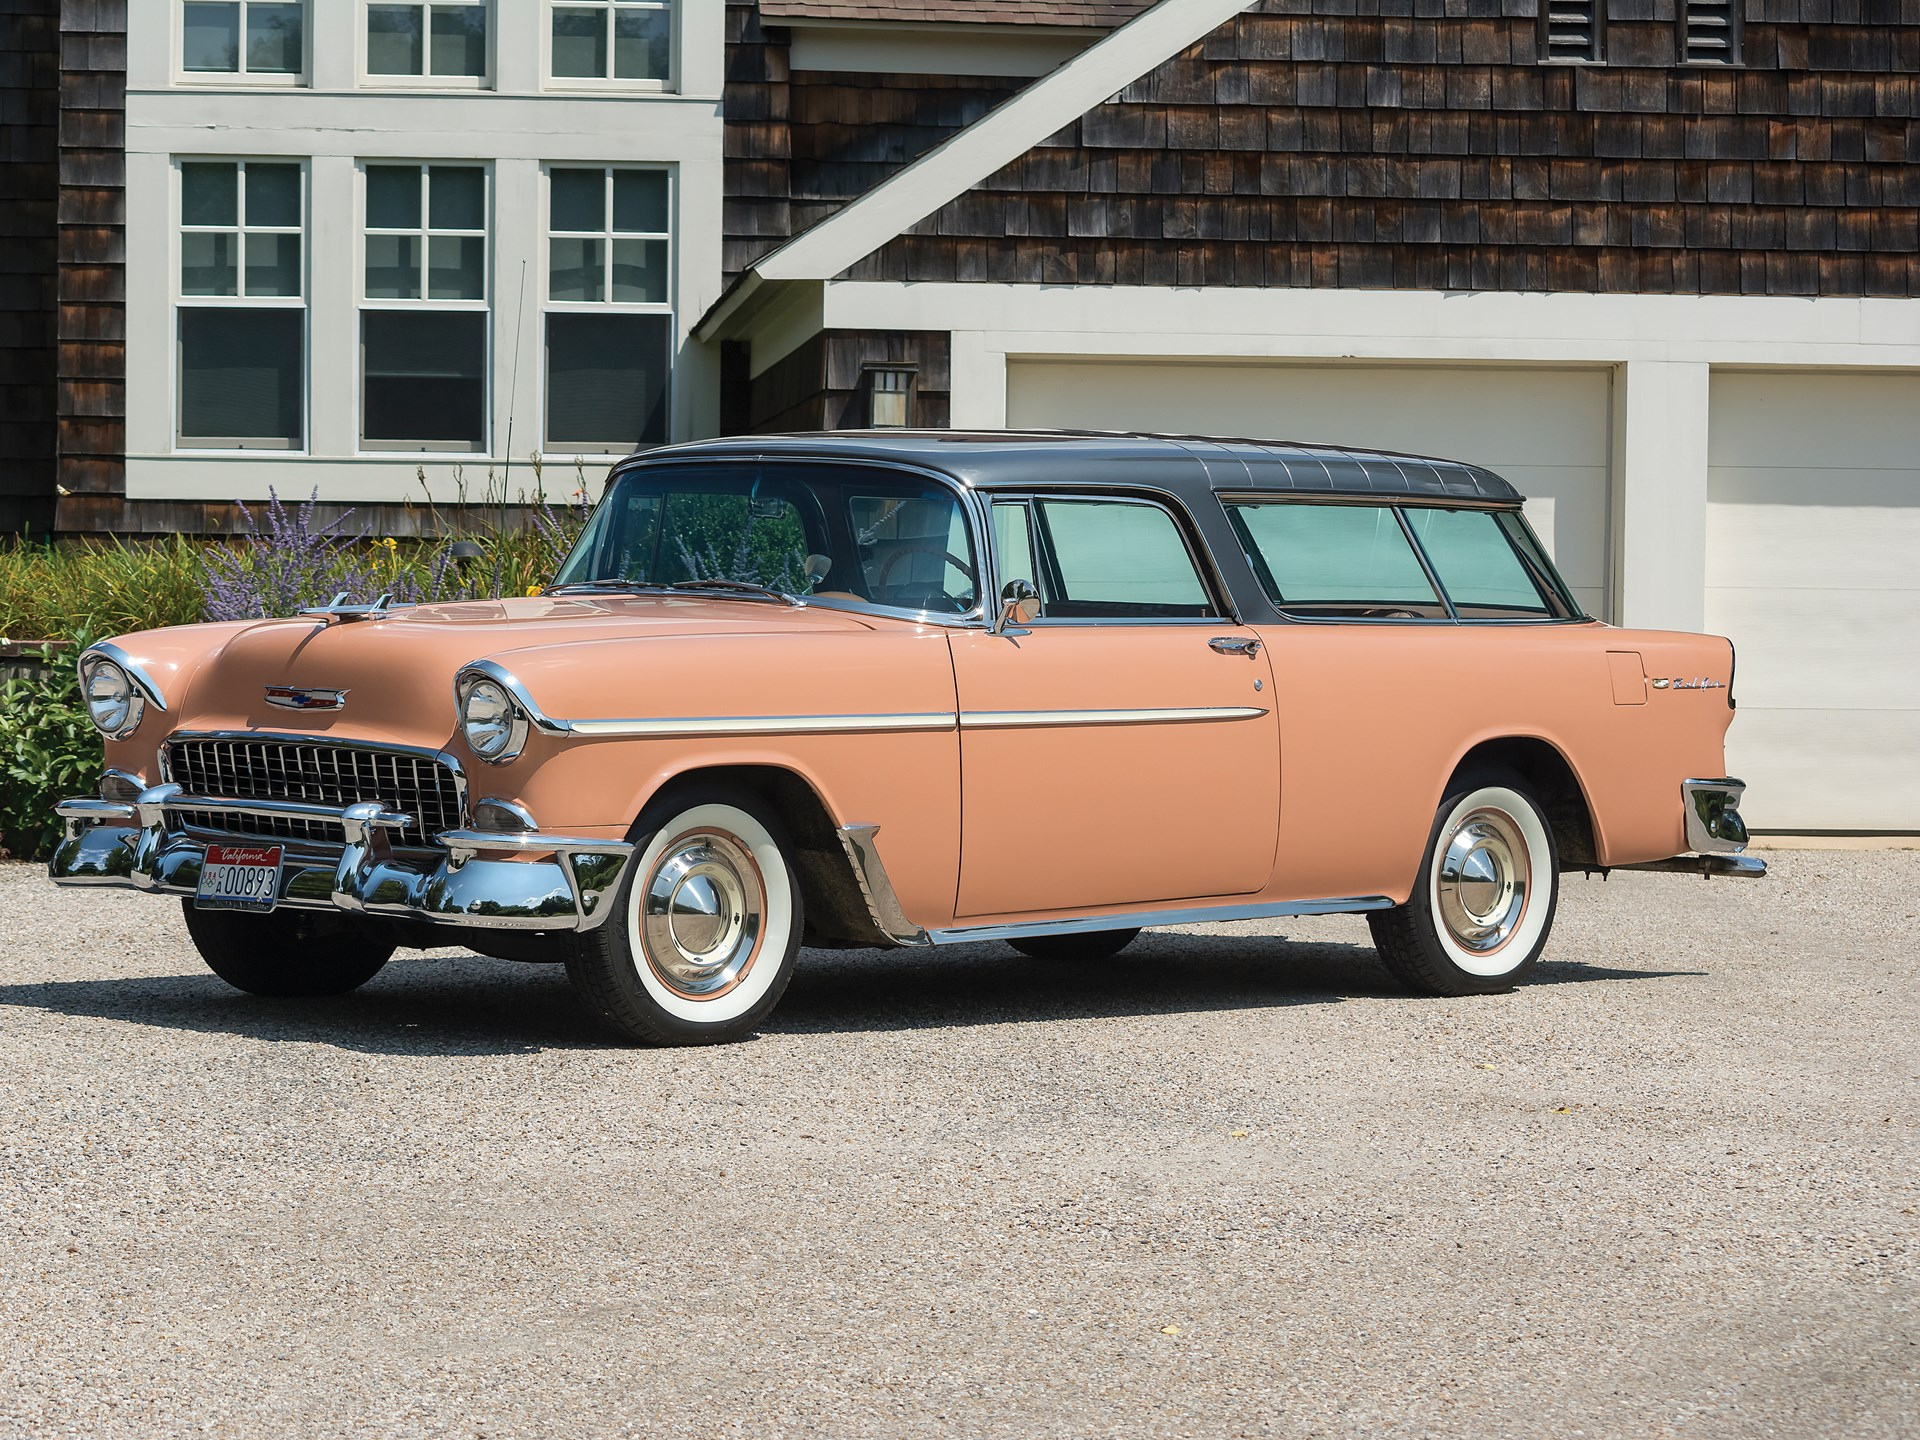 Rm Sothebys 1955 Chevrolet Bel Air Nomad Hershey 2017 1957 Chevy Station Wagon